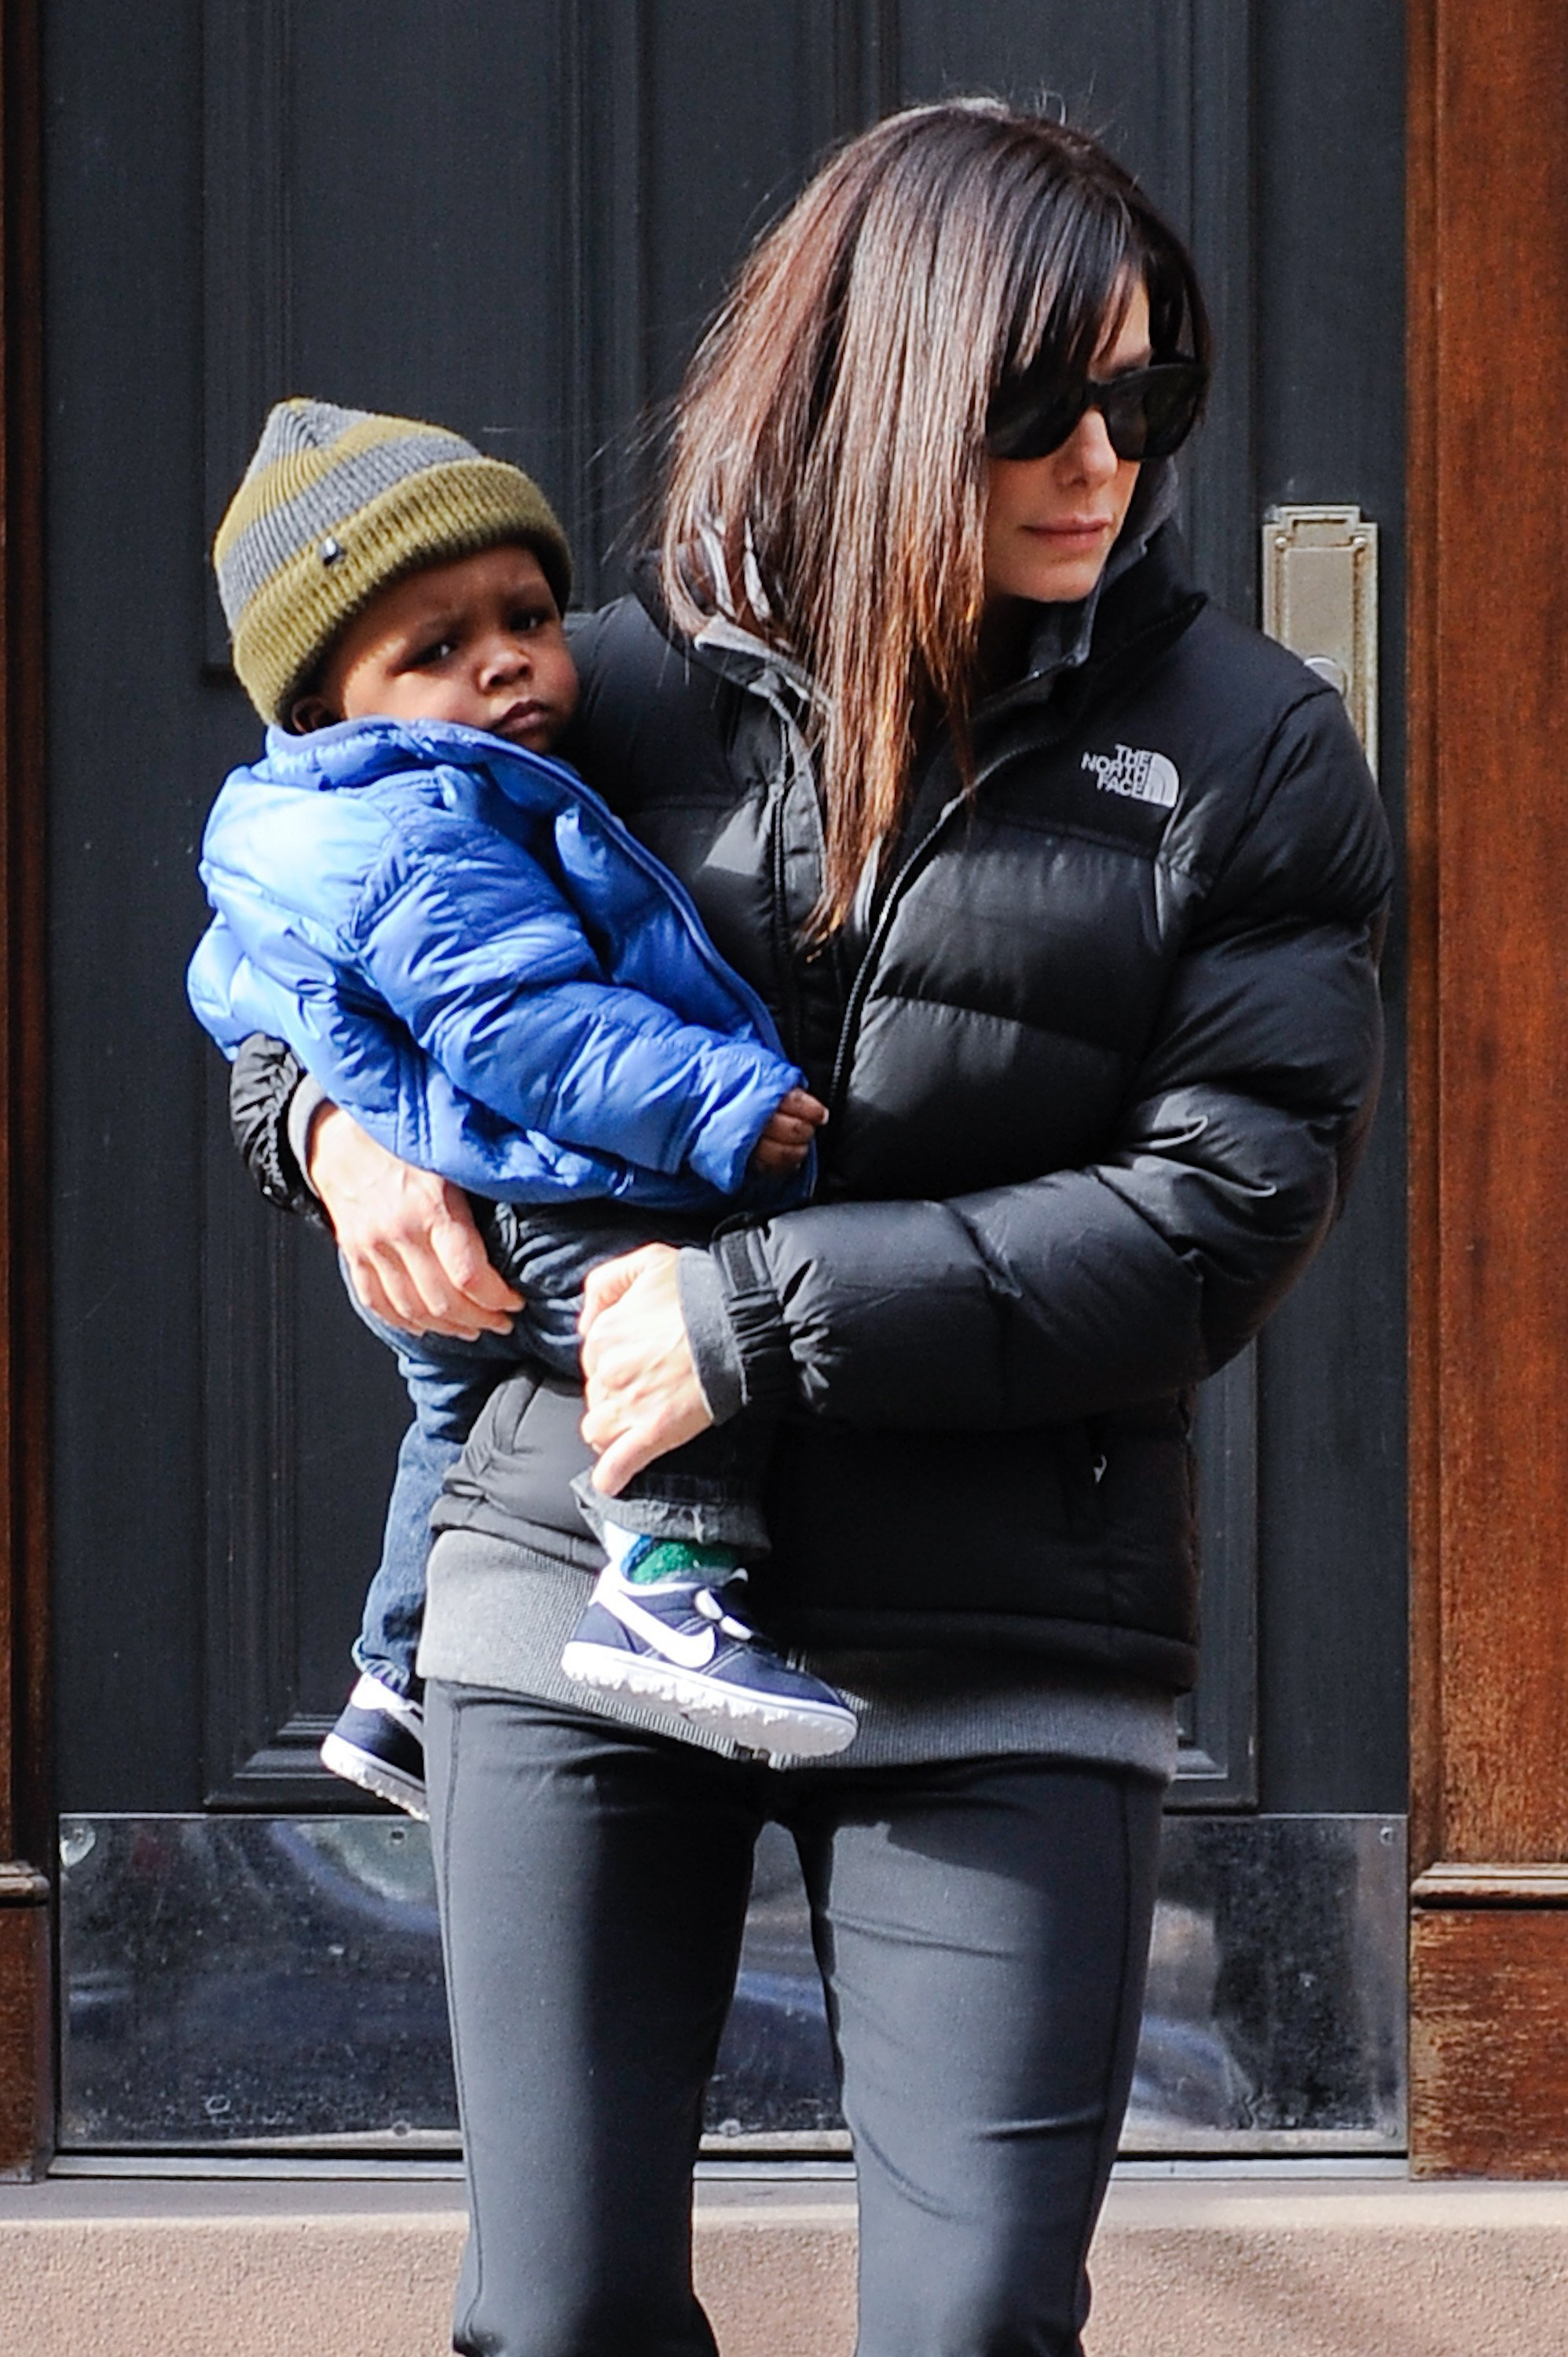 Sandra Bullock and her son Louis Bullock leave their Soho home on January 20, 2011 | Photo: GettyImages